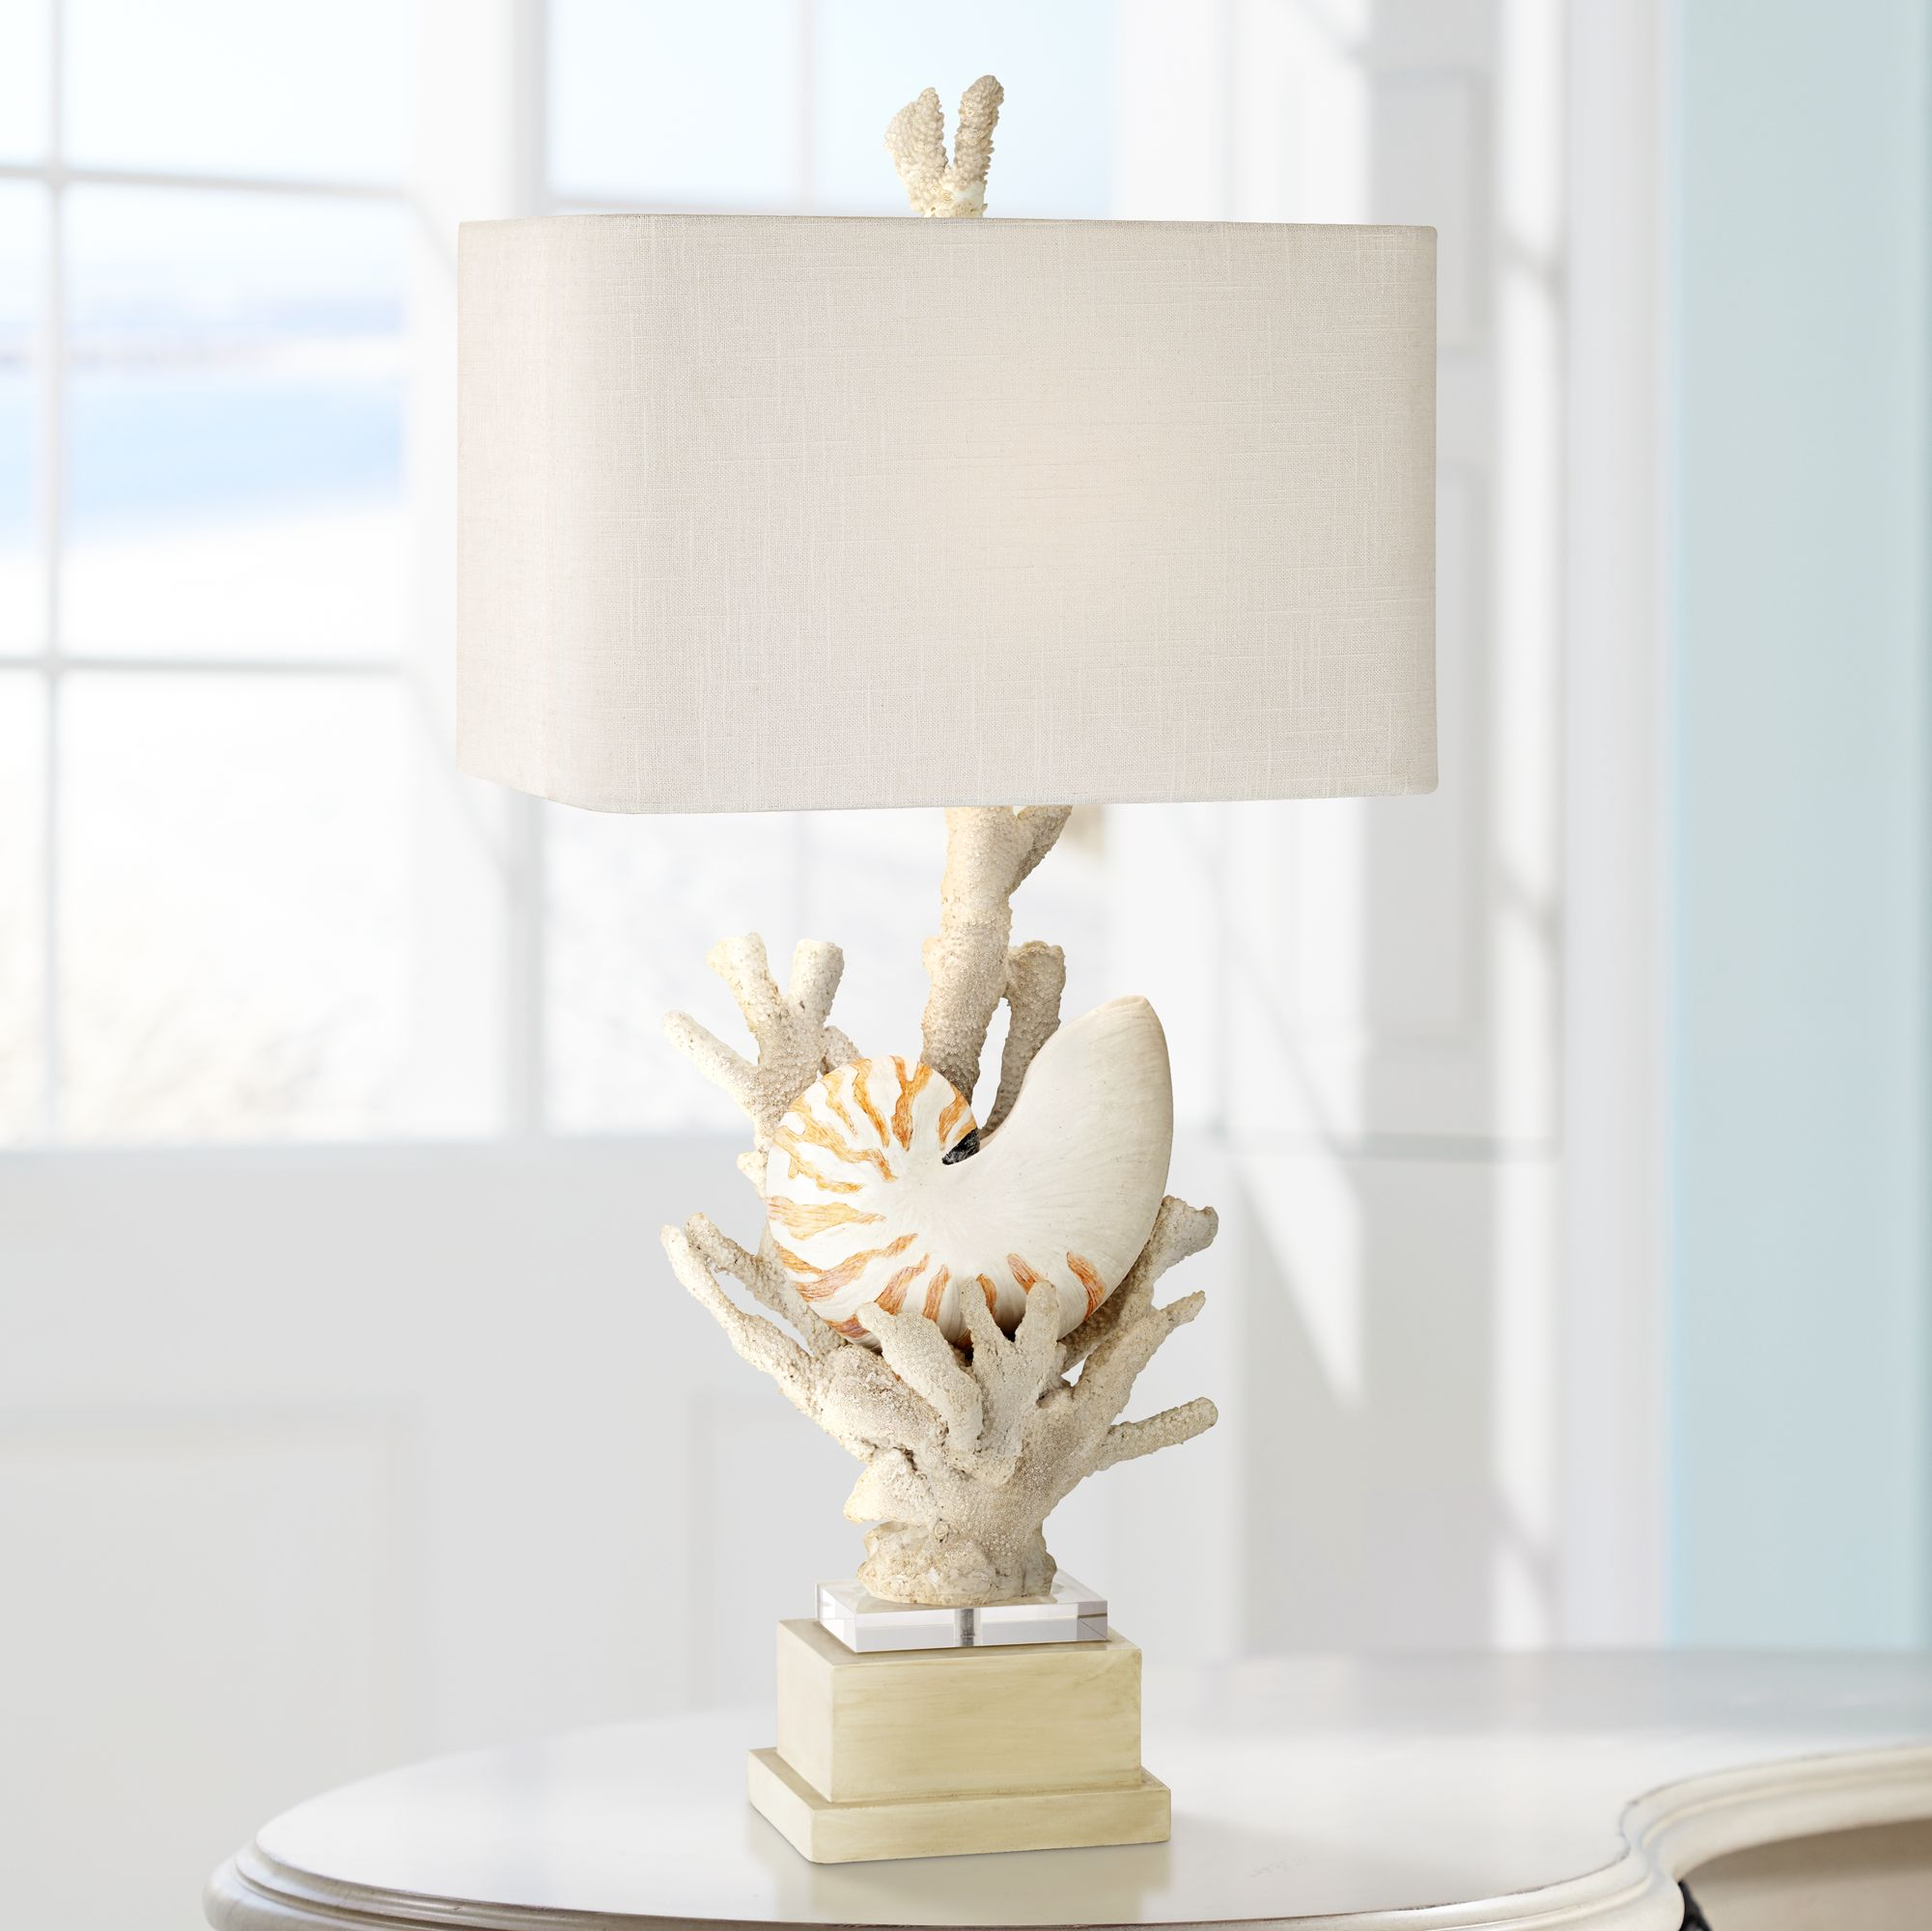 Genial Nautilus Shell And White Coral Table Lamp By Kathy Ireland